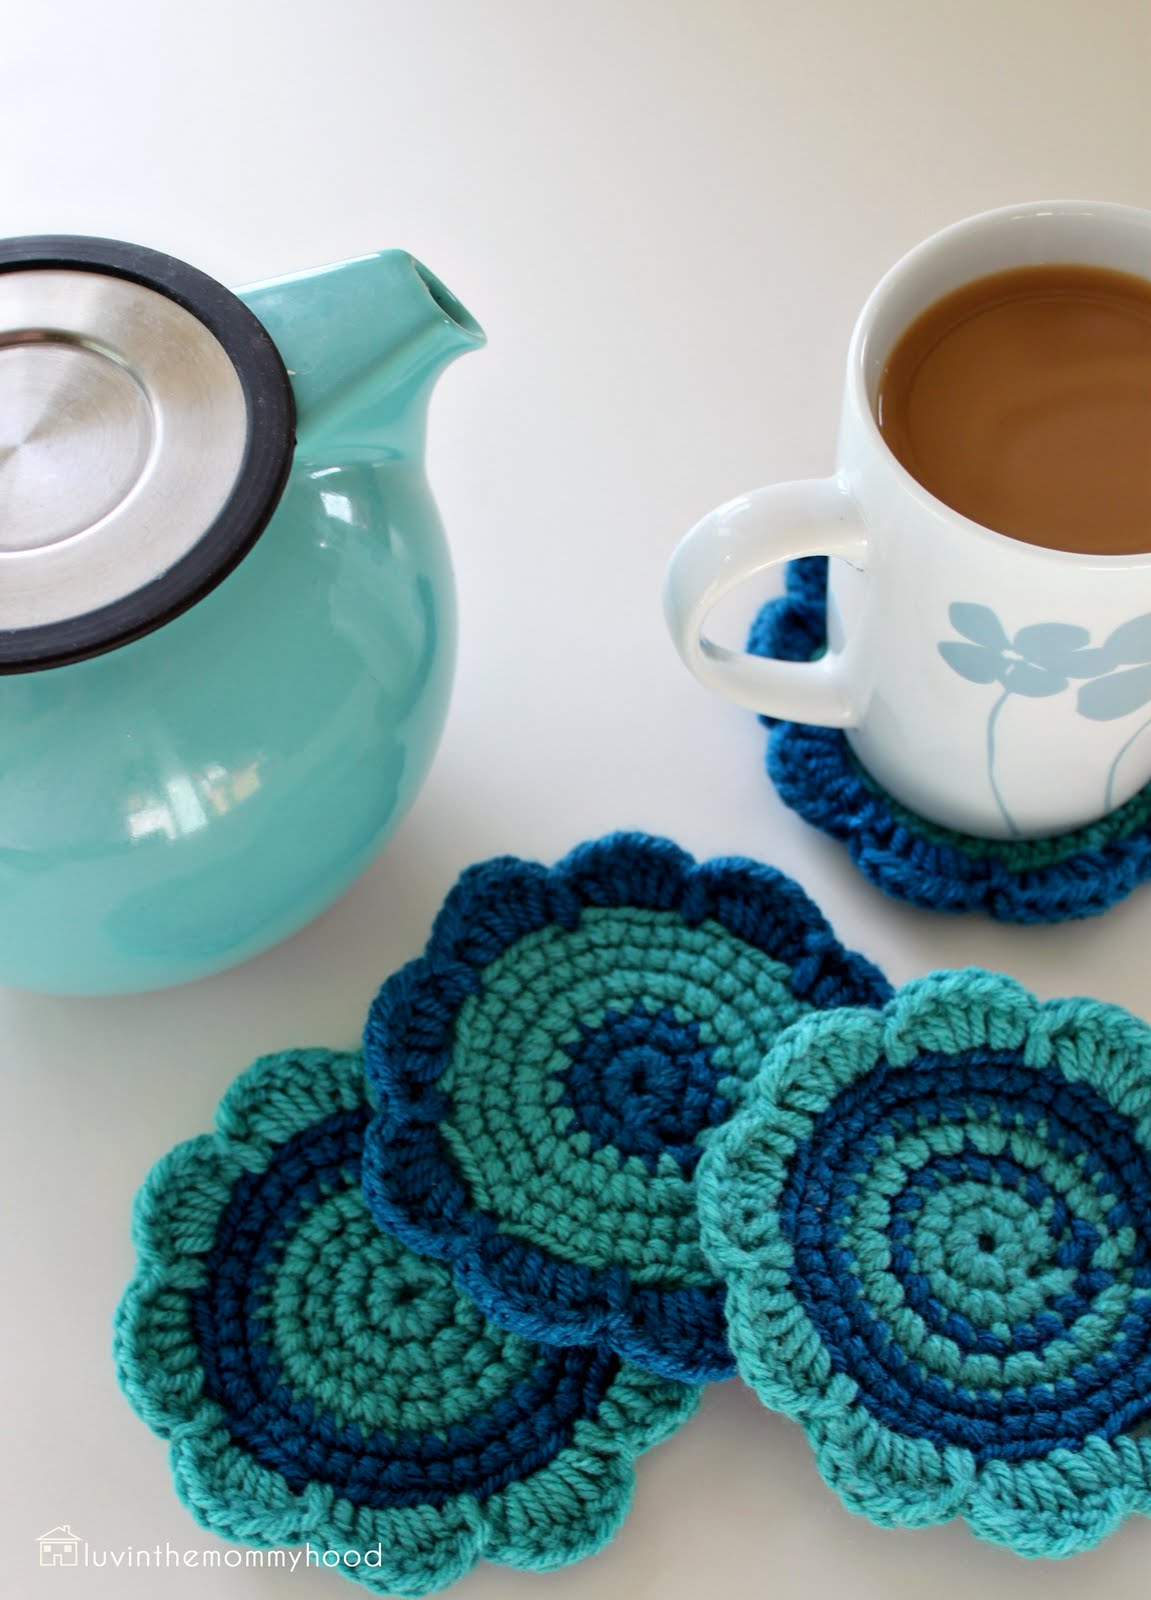 Crochet Coasters : versus: jardain crochet coaster tutorial with guest rebecca of nook